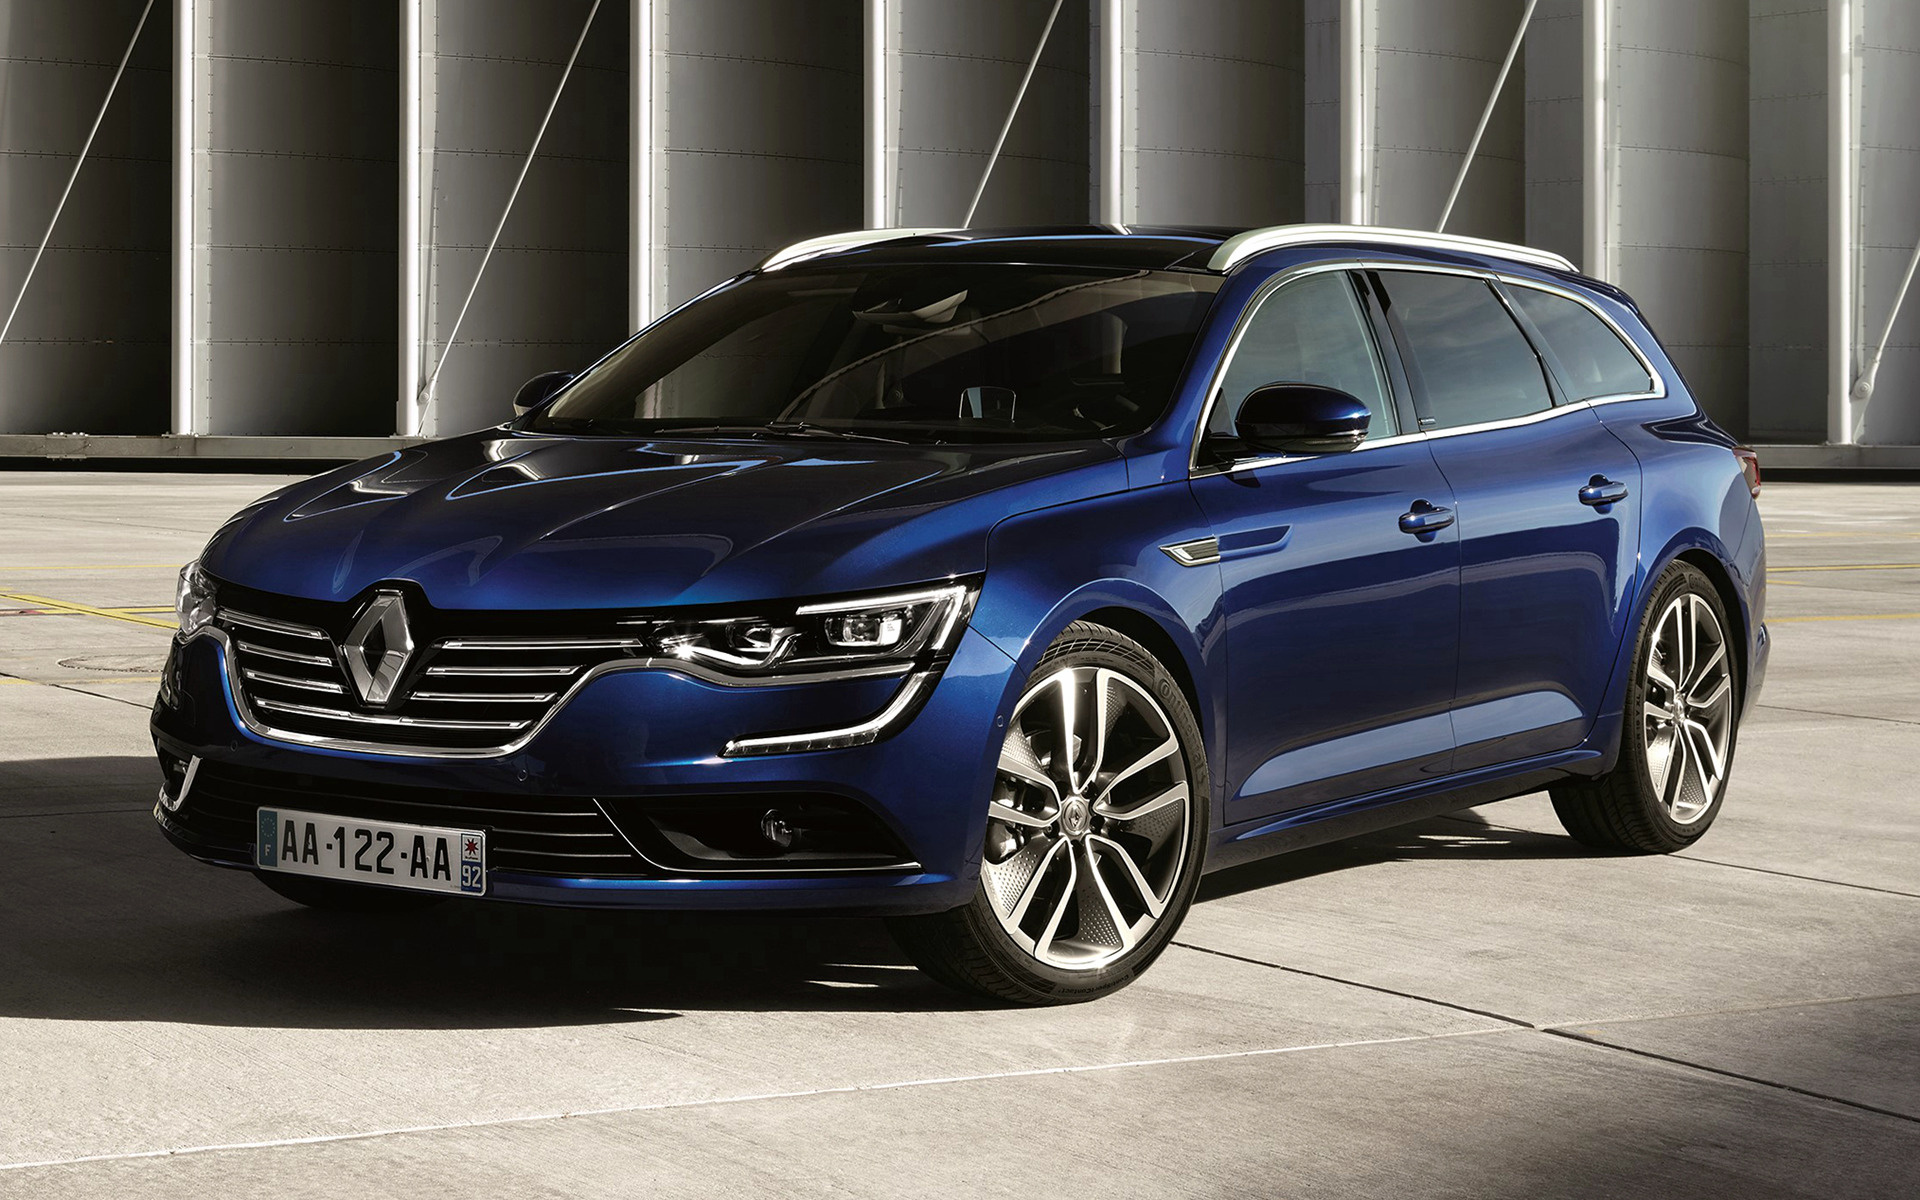 renault talisman estate 2015 wallpapers and hd images car pixel. Black Bedroom Furniture Sets. Home Design Ideas